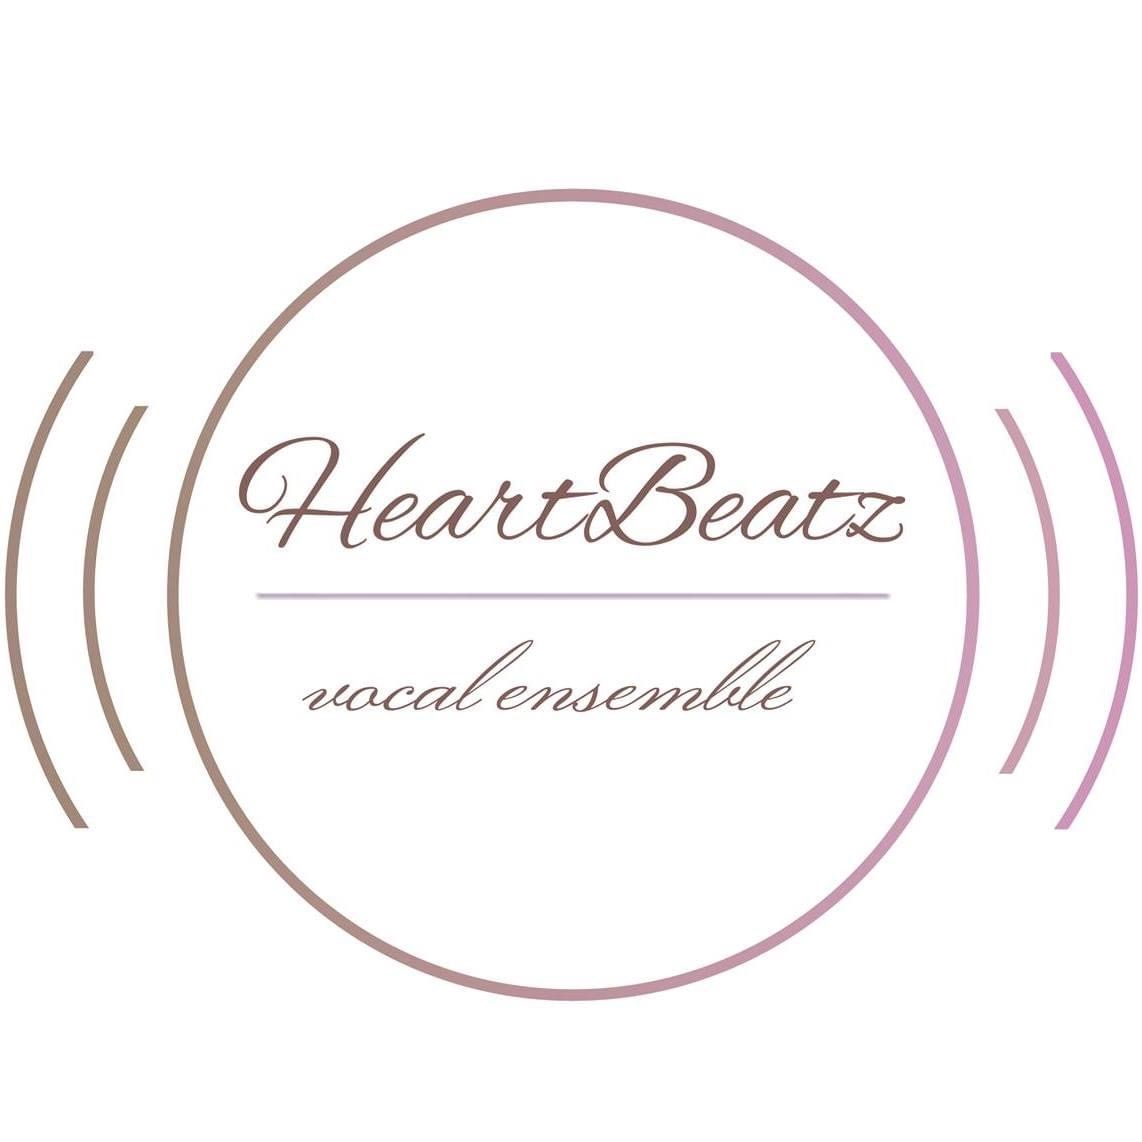 HeartBeatz - Vocal Ensemble Logo